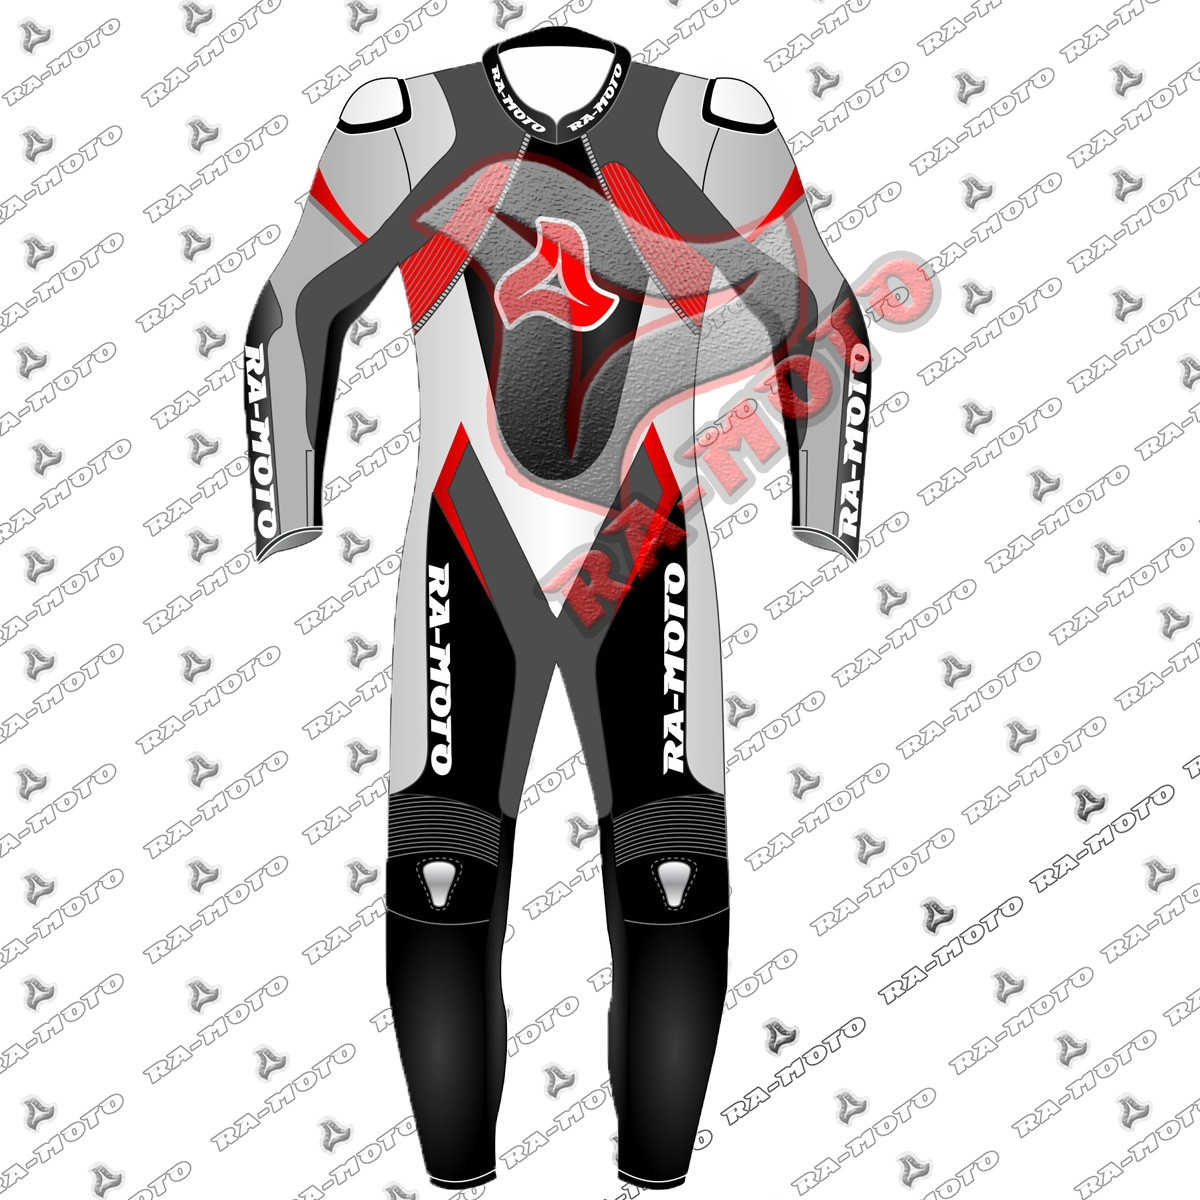 RA-15275  Fire  Motorbike Drag leather racing suit